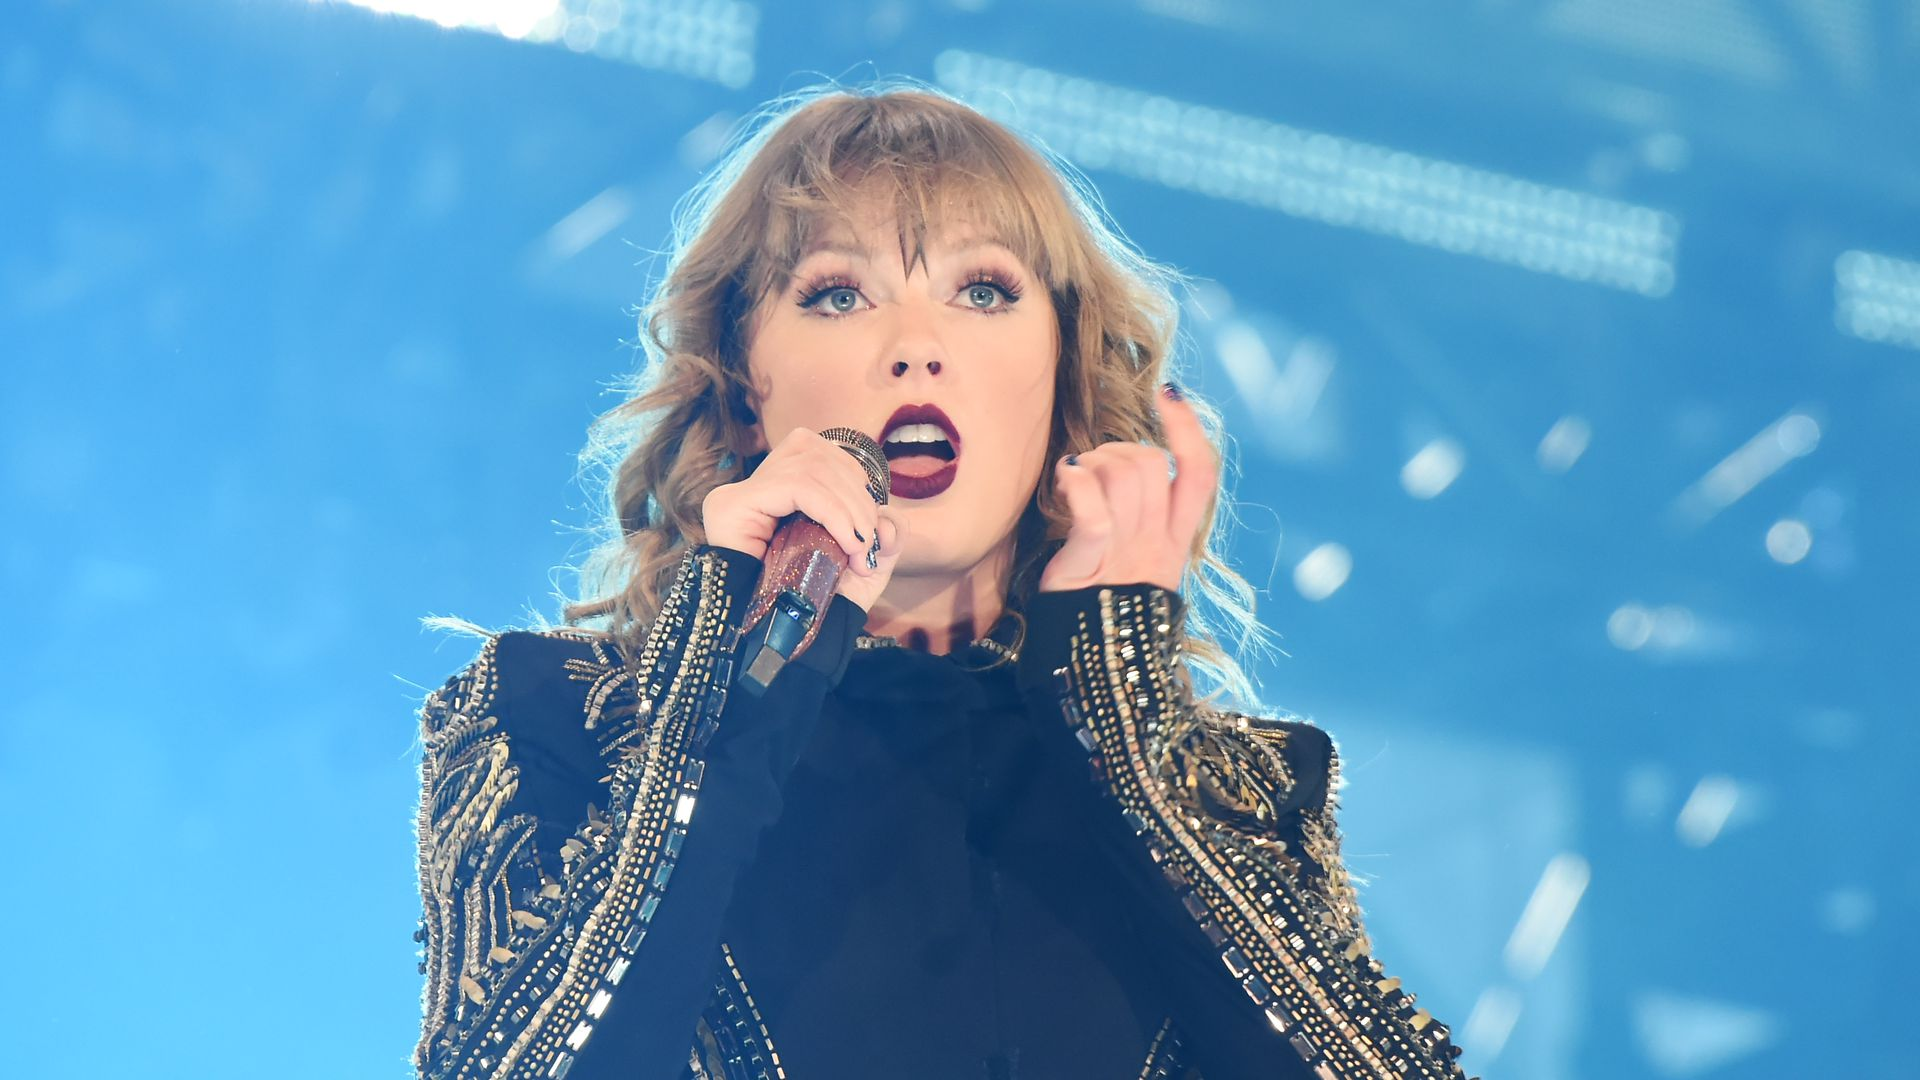 Taylor Swift inks Universal Music Group mega-deal - Axios